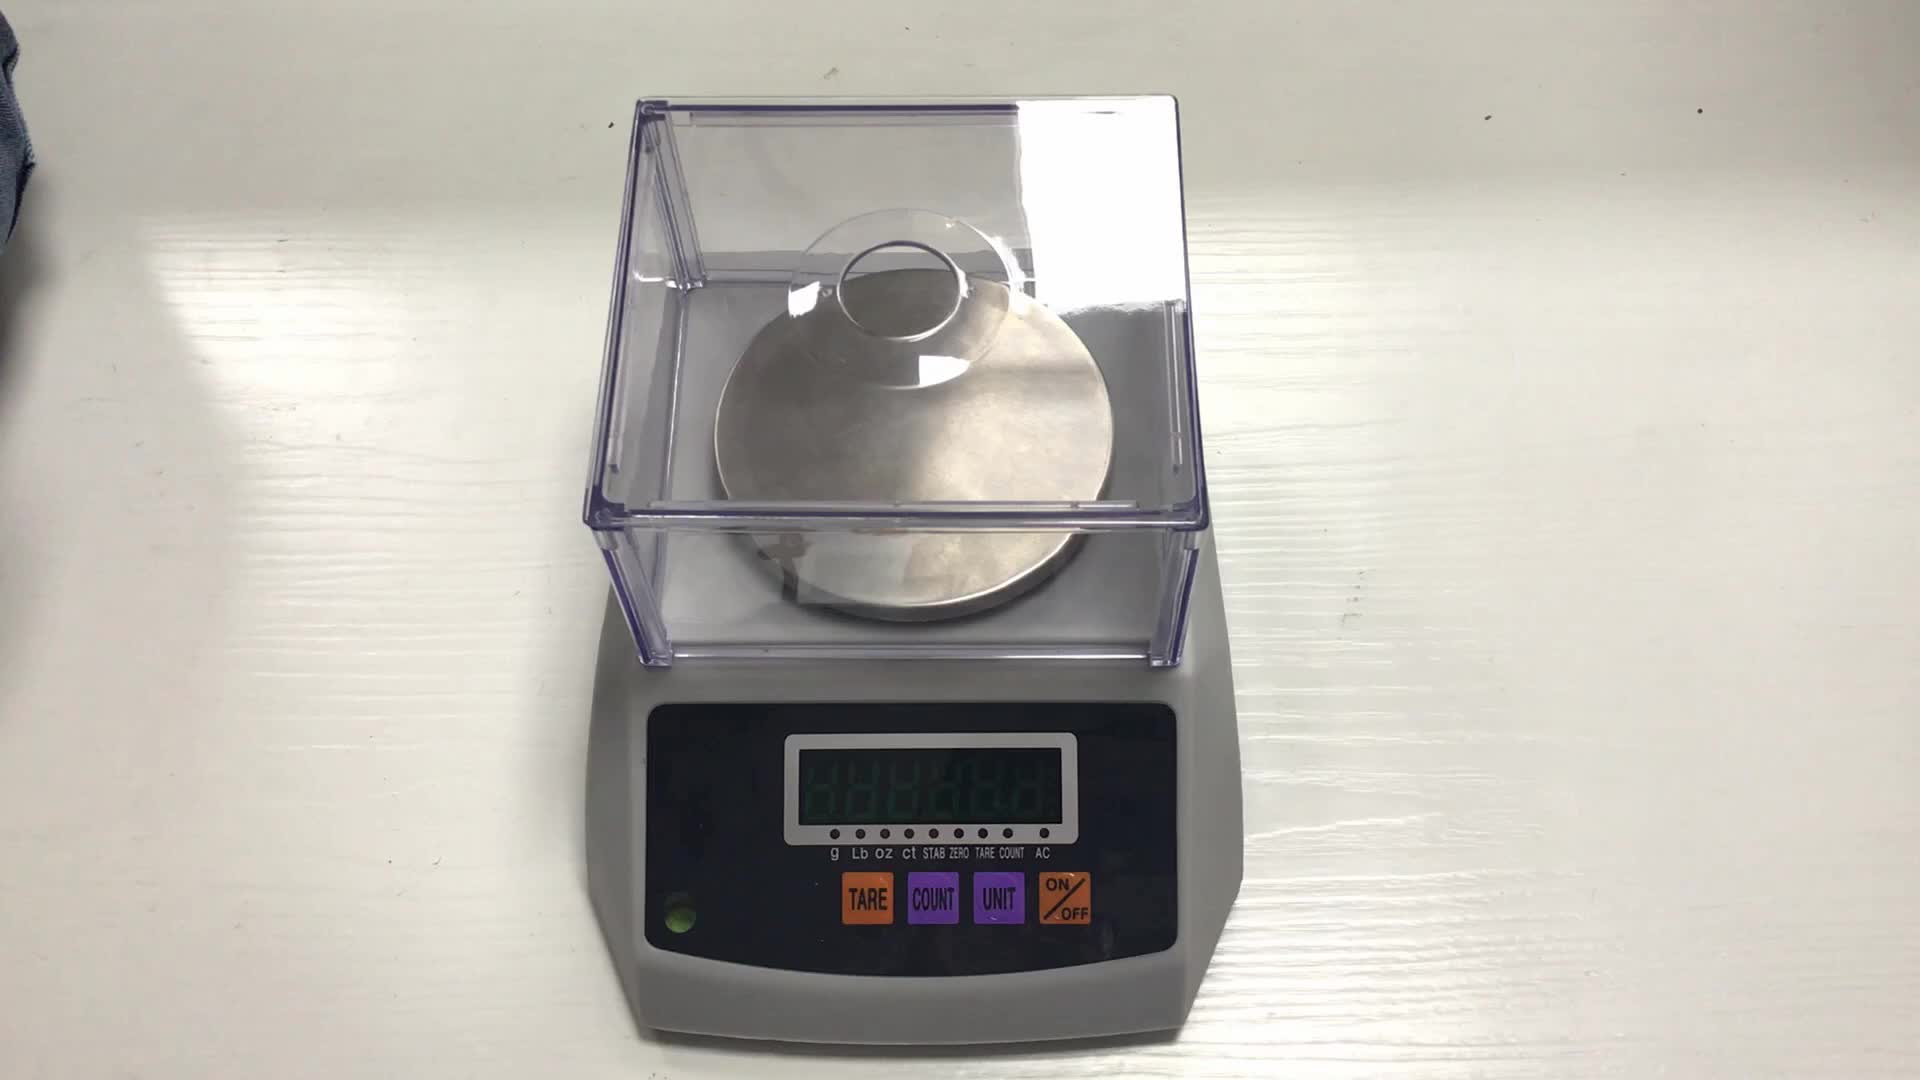 Laboratory Weighing Balance Scale With Green LED